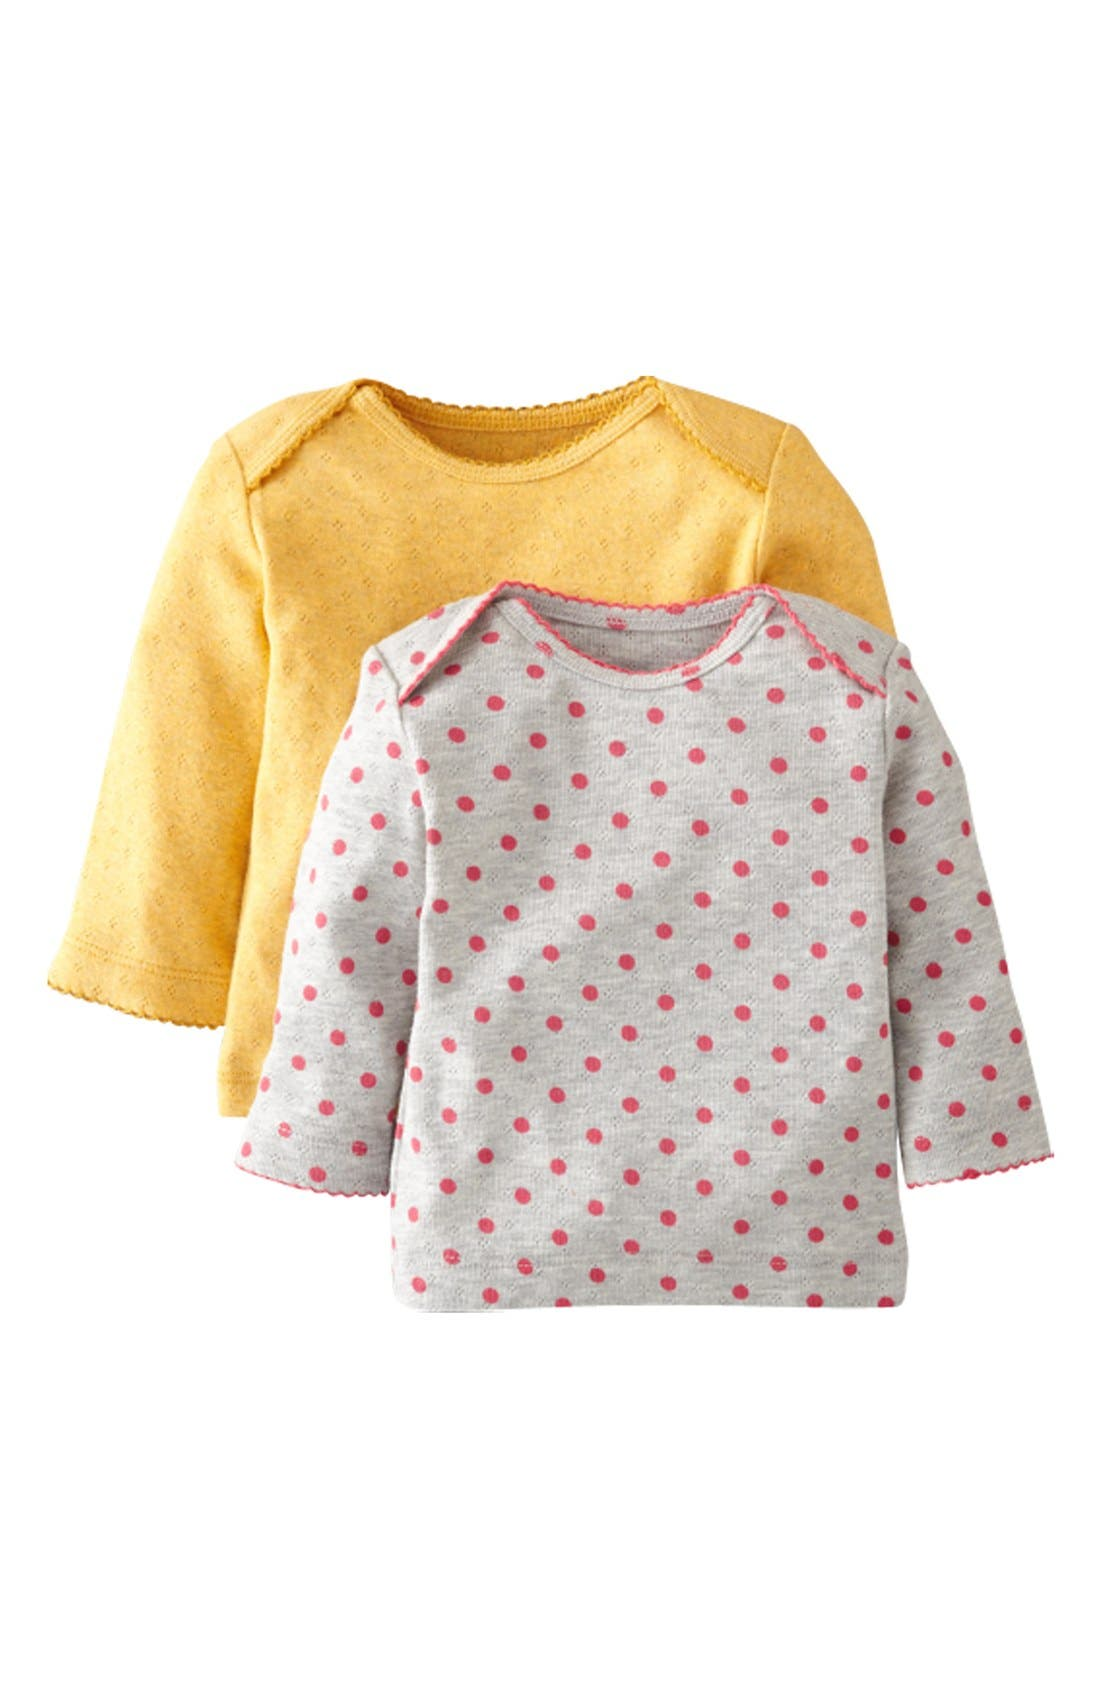 Alternate Image 1 Selected - Mini Boden Pointelle Tee (2-Pack) (Baby Girls)